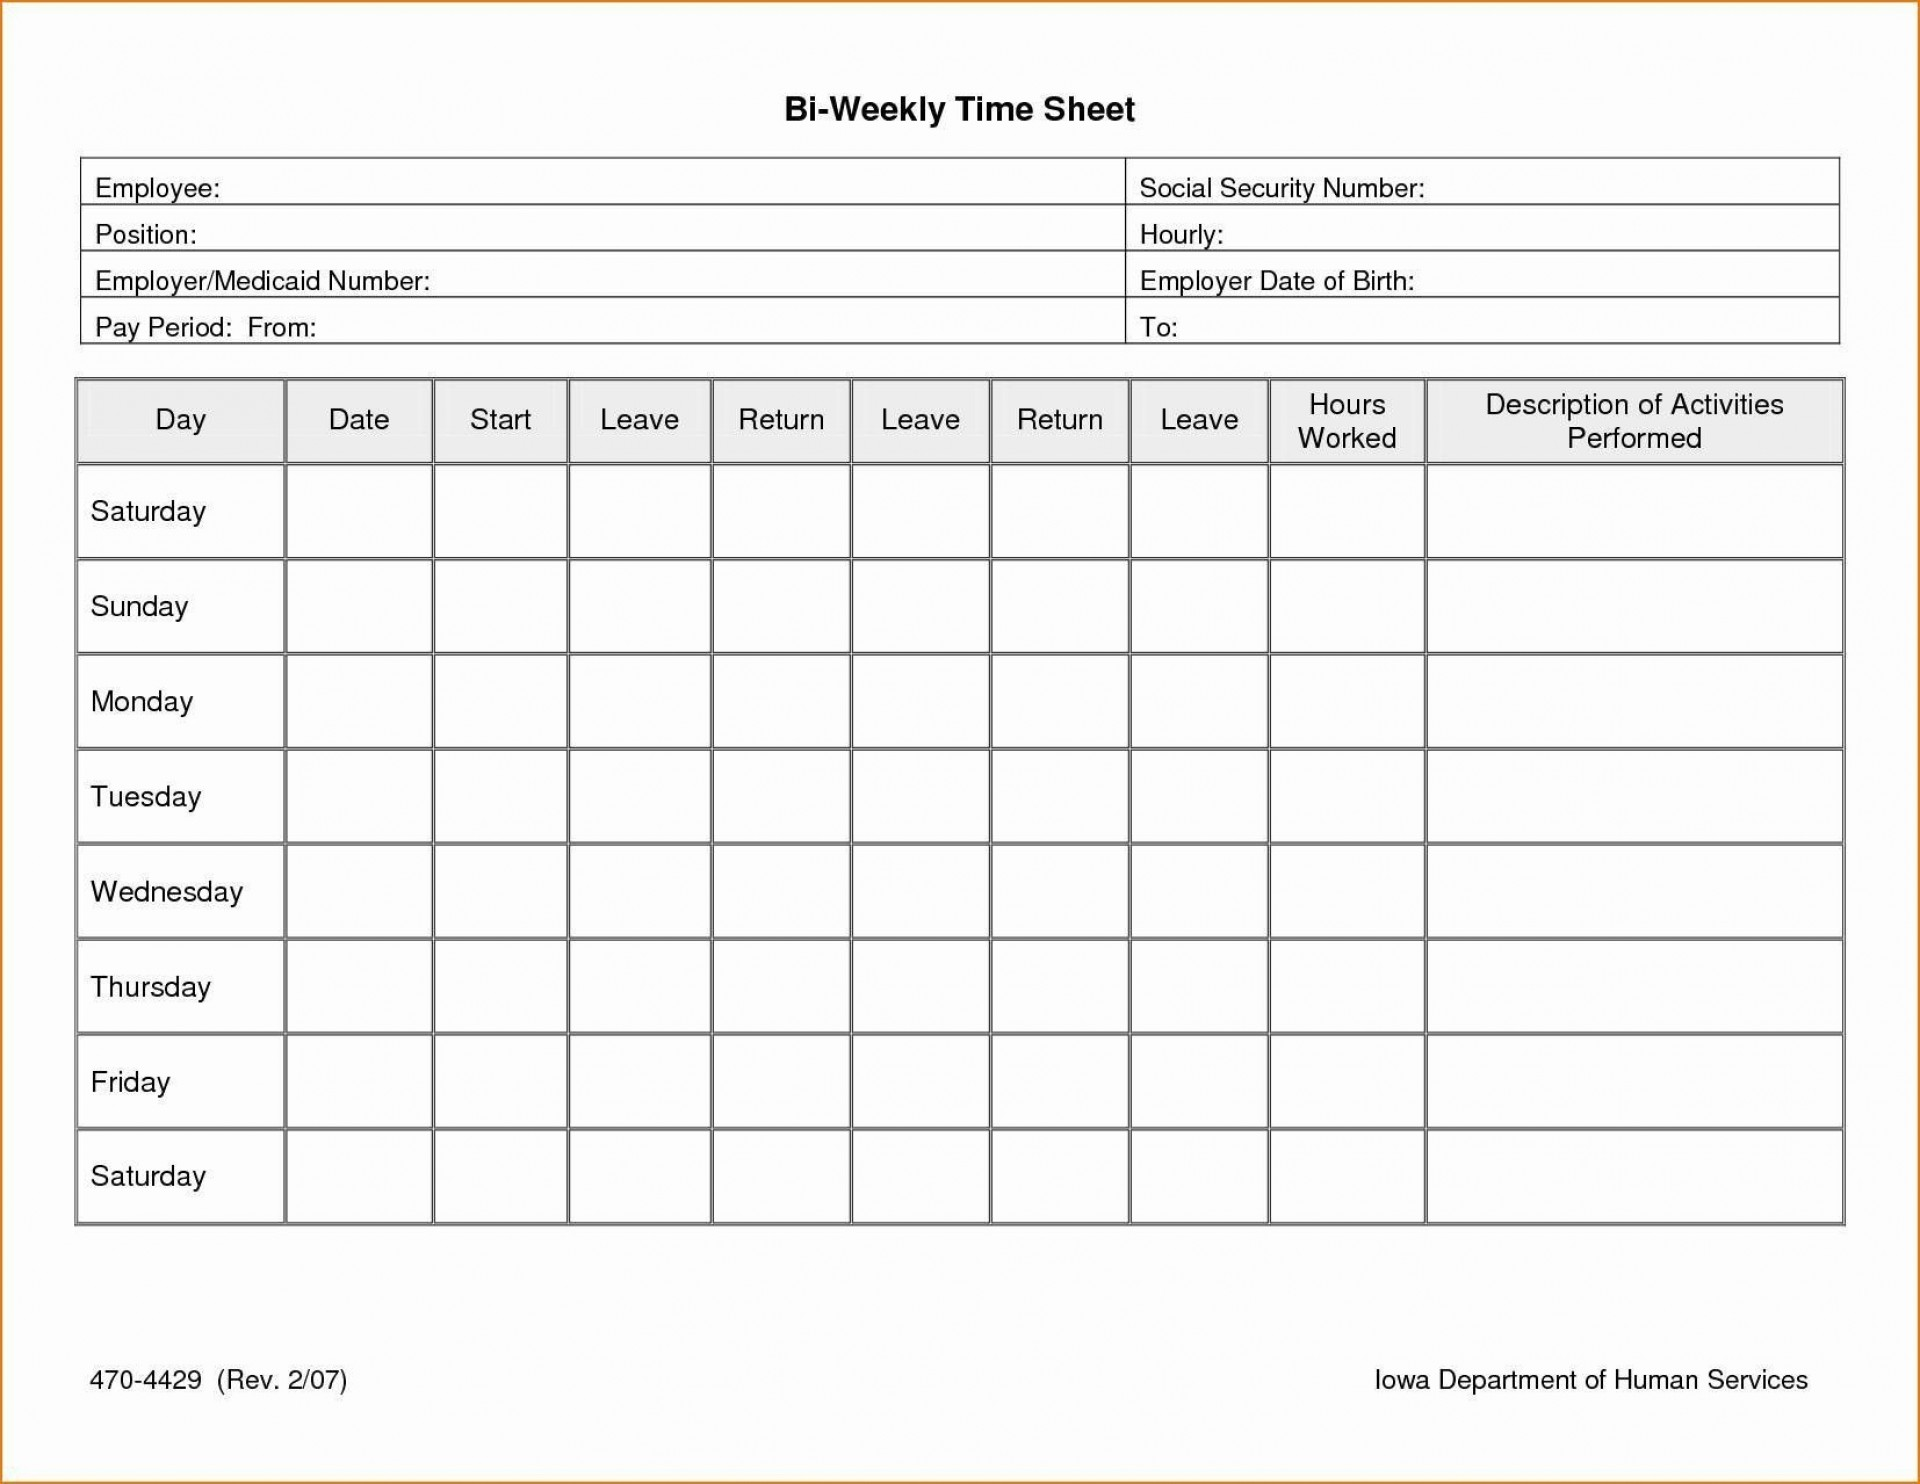 003 Excellent Free Weekly Timesheet Template Example  For Multiple Employee Biweekly Excel With Formula1920